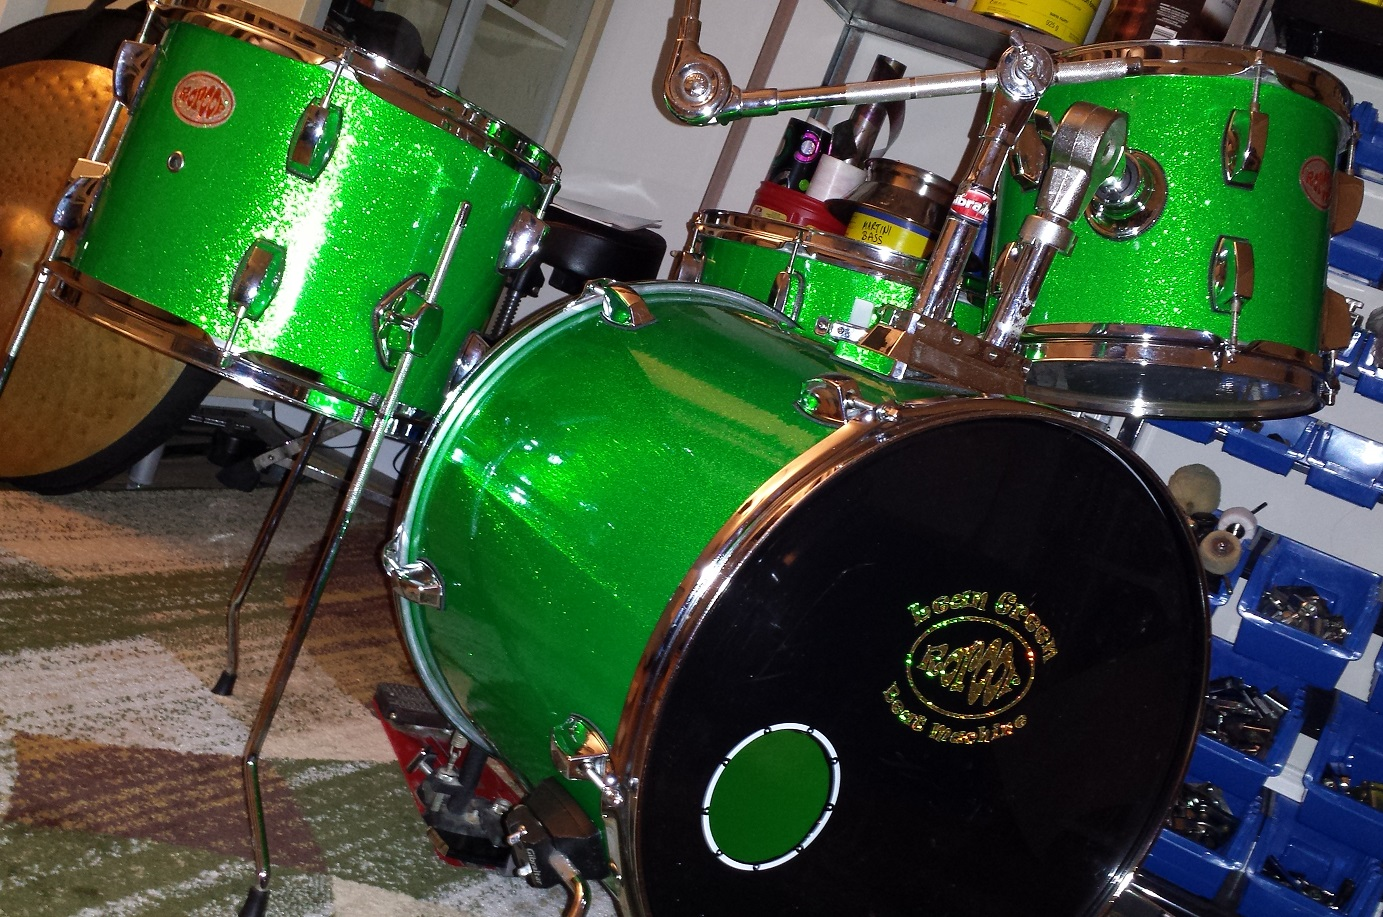 DIY Compact Drum Kit The Lean Green Beat Machine